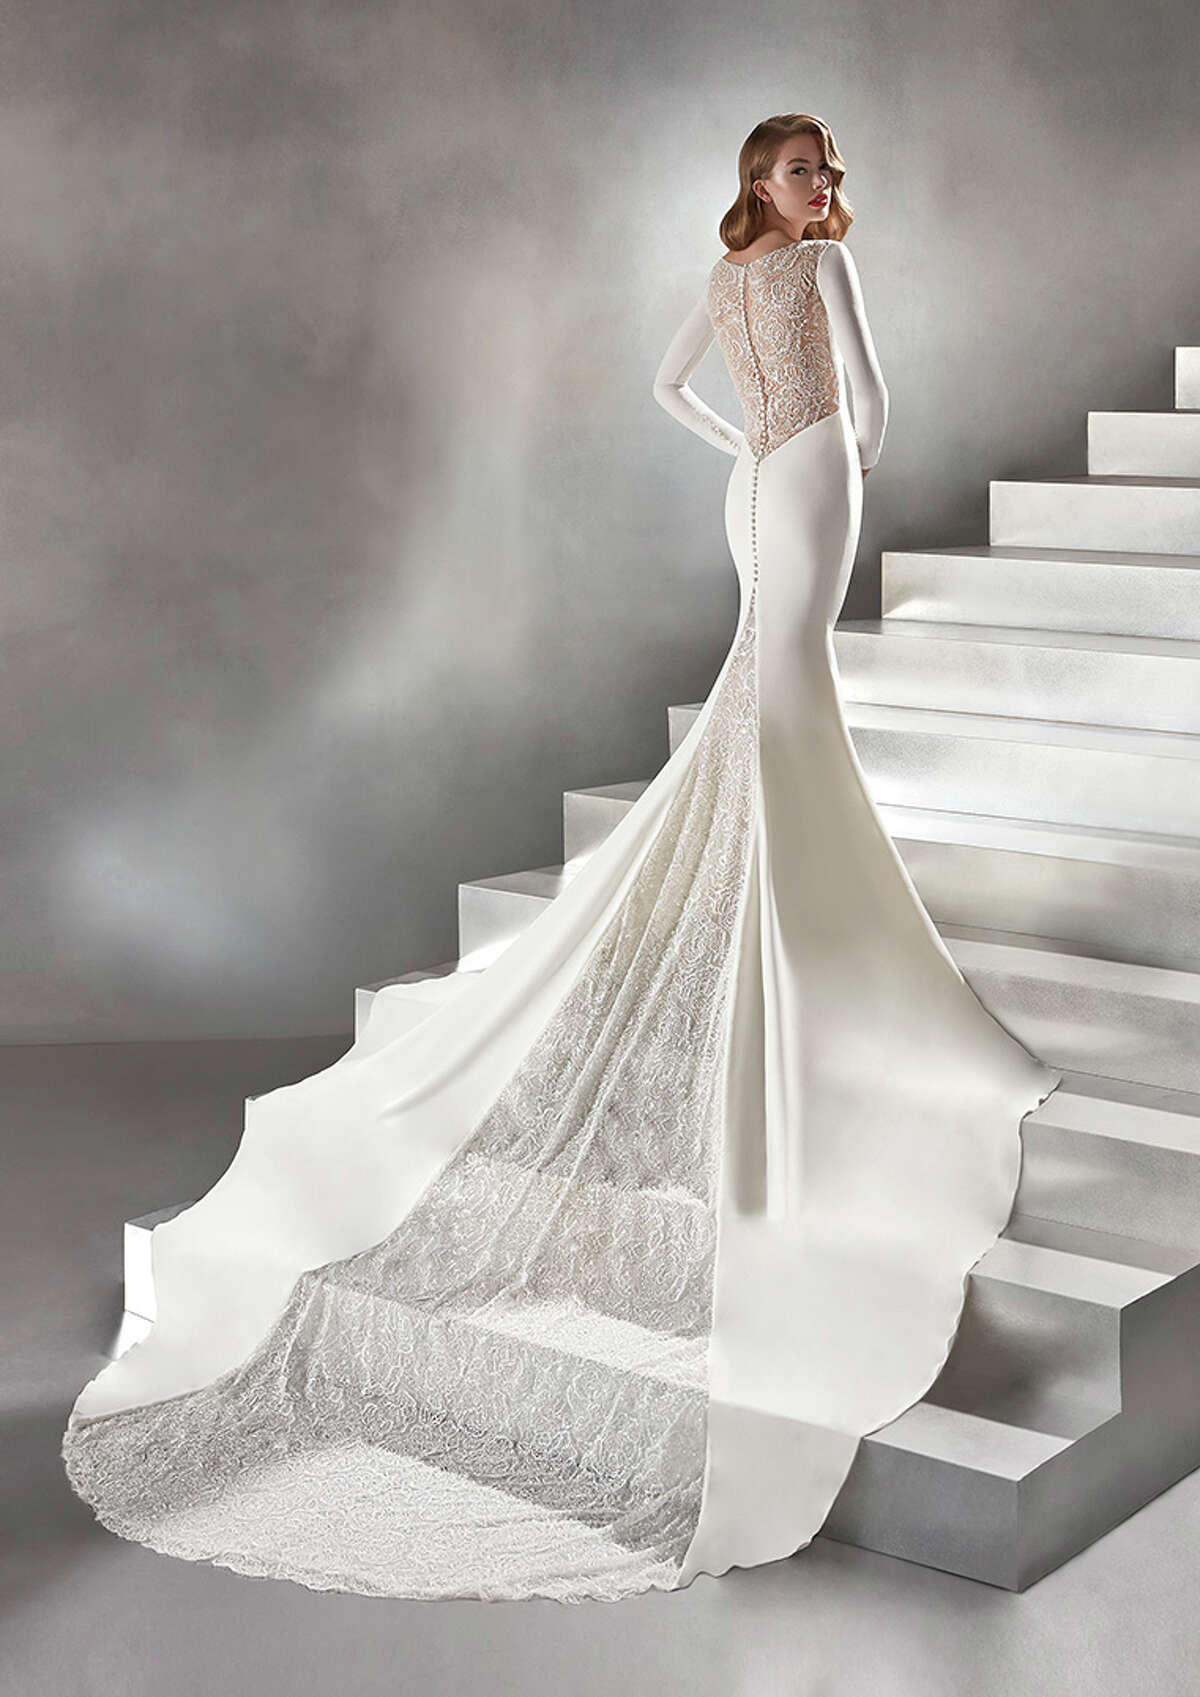 Caceres  C Pronovias Boutique Houston is one of seven new bridal stores that the brand is opening across the country, joining the first-ever American store in New York.